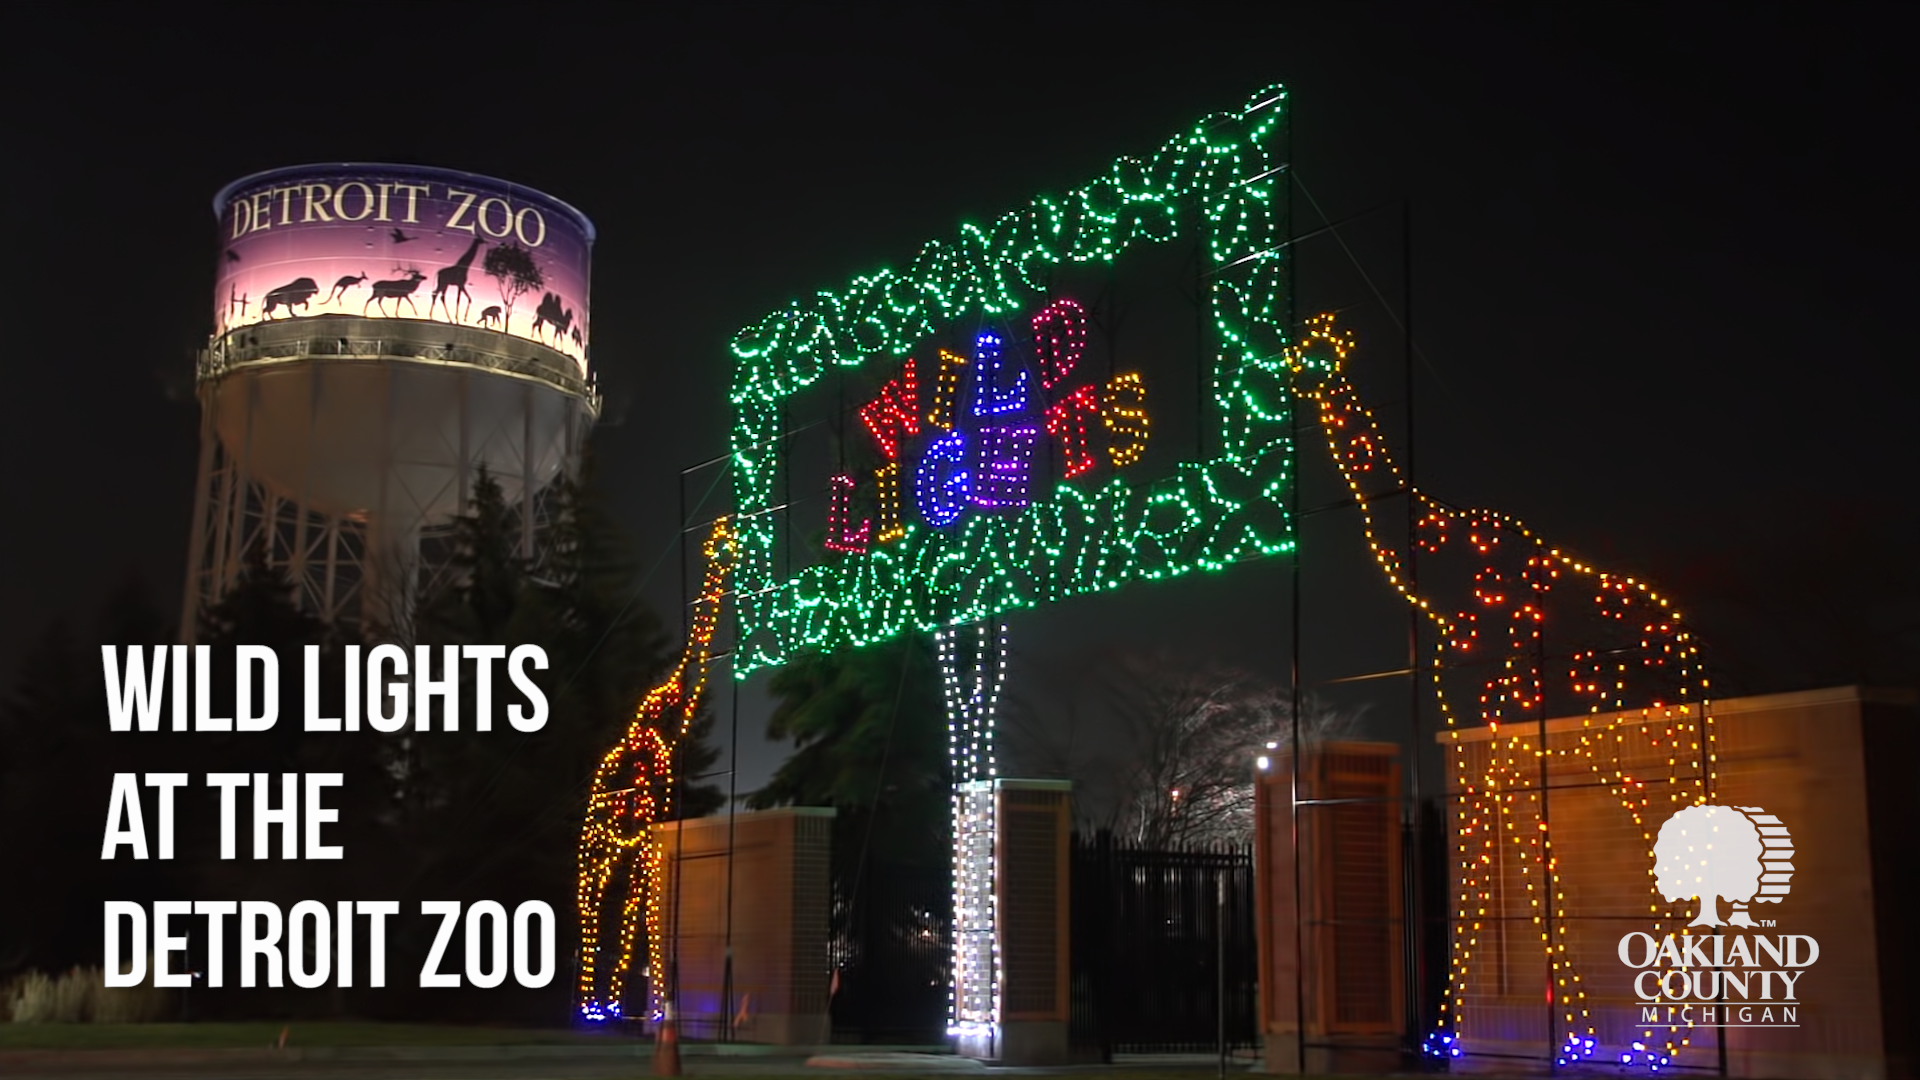 Wild Lights at the Detroit Zoo Sign and Water Tower